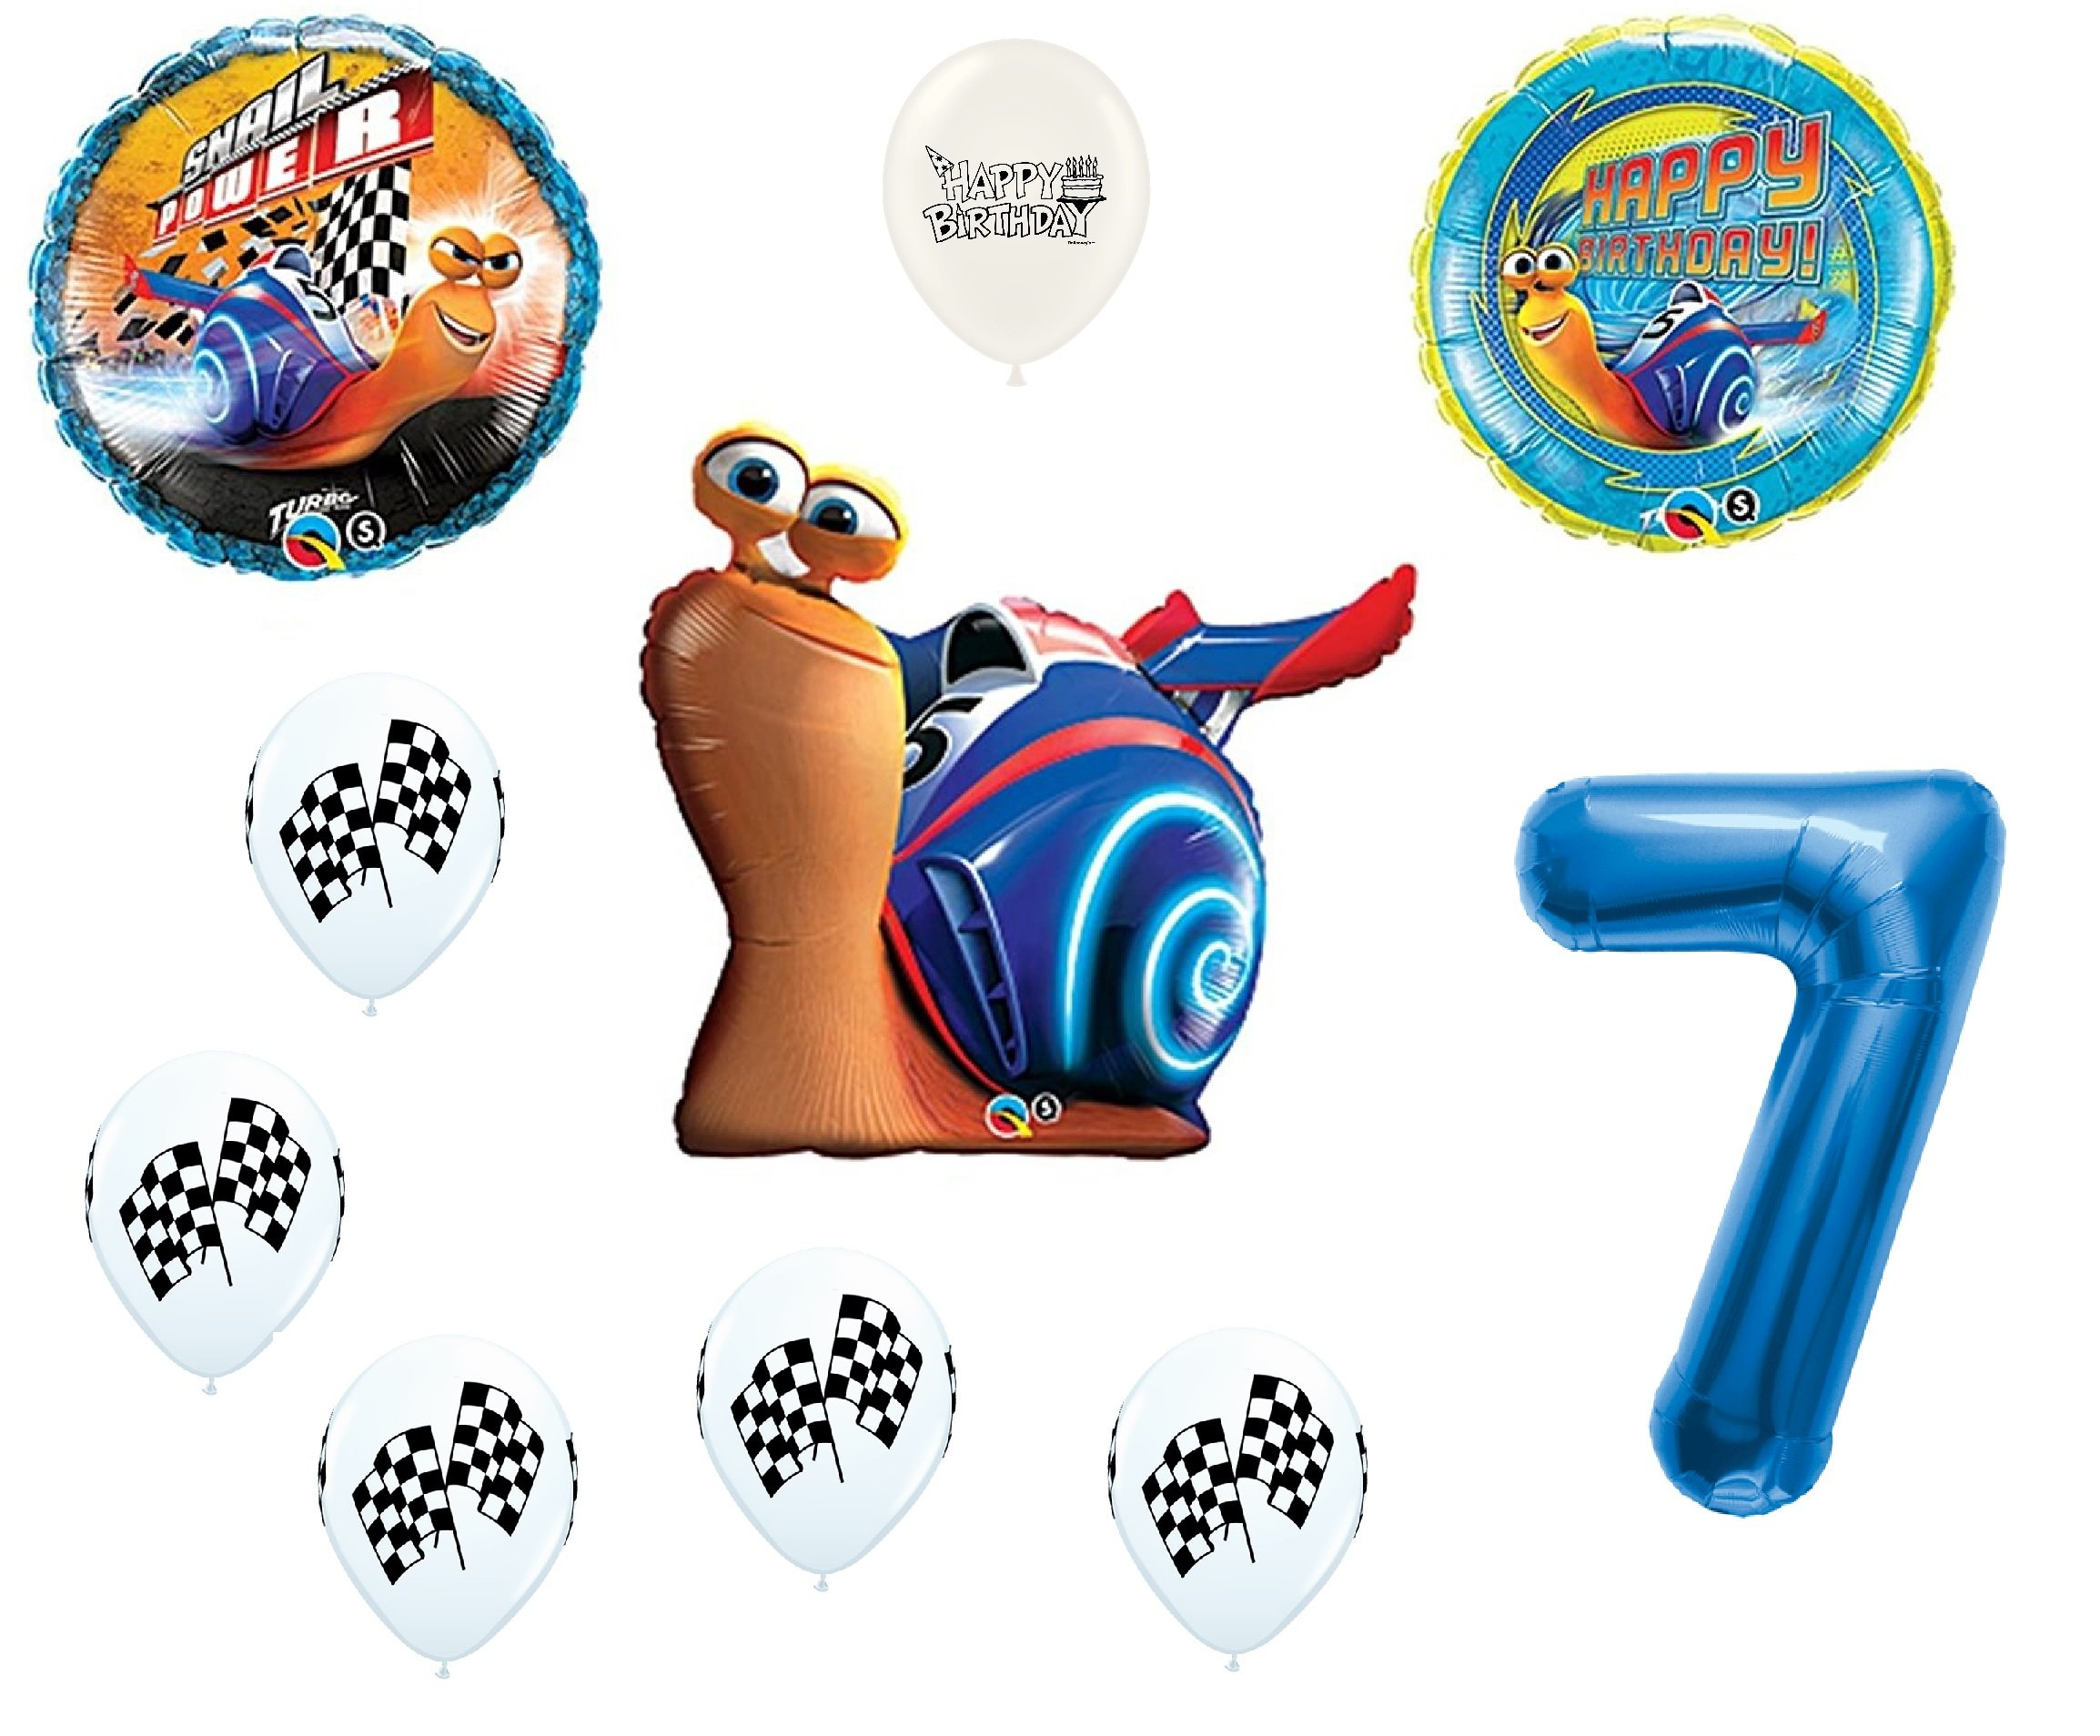 Turbo the Movie Birthday Balloon Bouquet Bundle with Blue Number option 1-9 (7th Birthday)